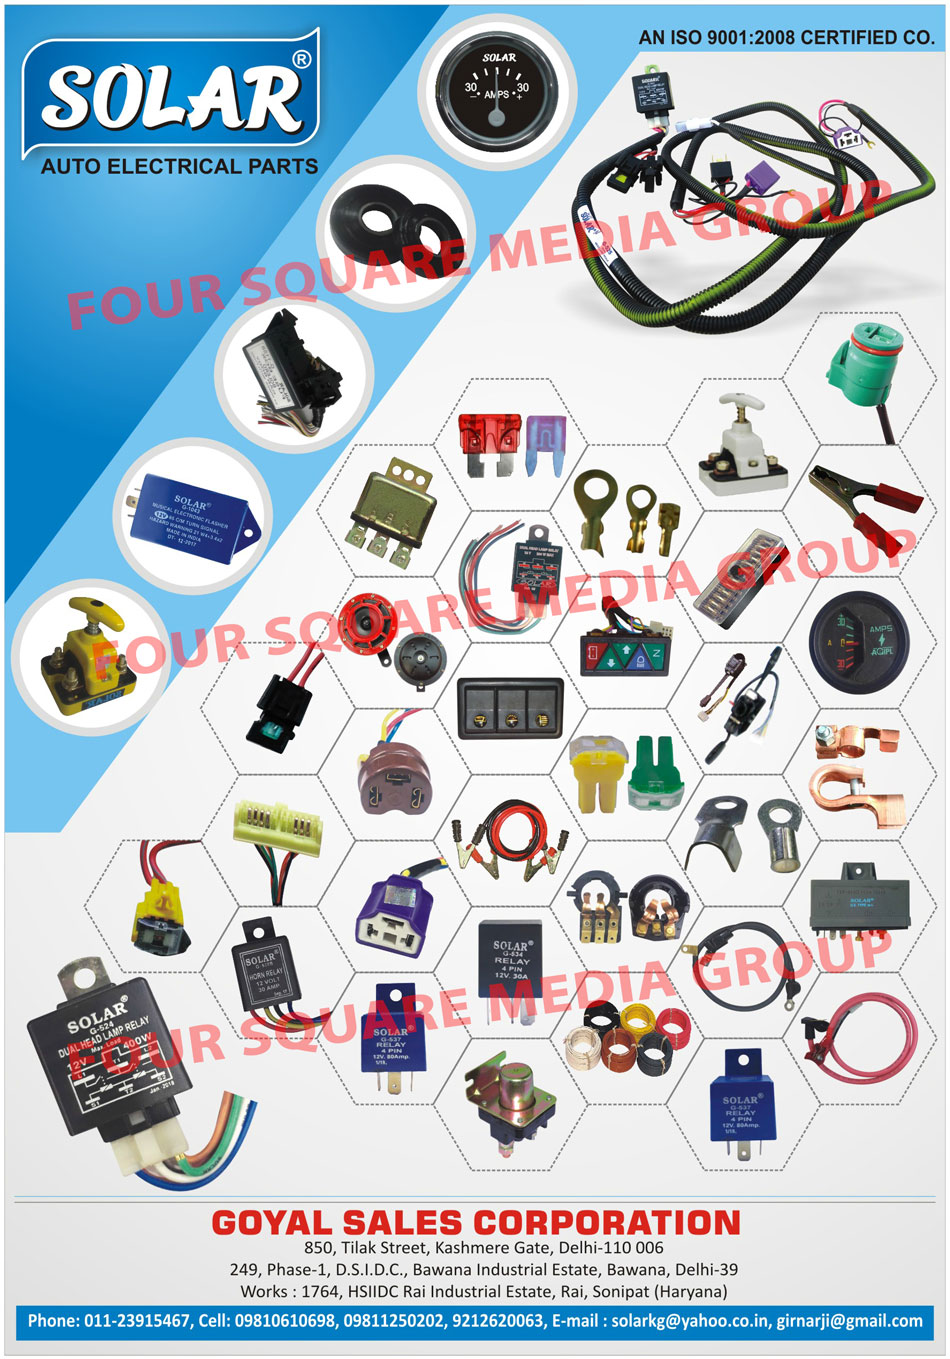 Tractor Electrical Parts Automotive Ignition Module Wire Harness Pvc Cables Brake Lights Fuse Holder Halogen Bulb